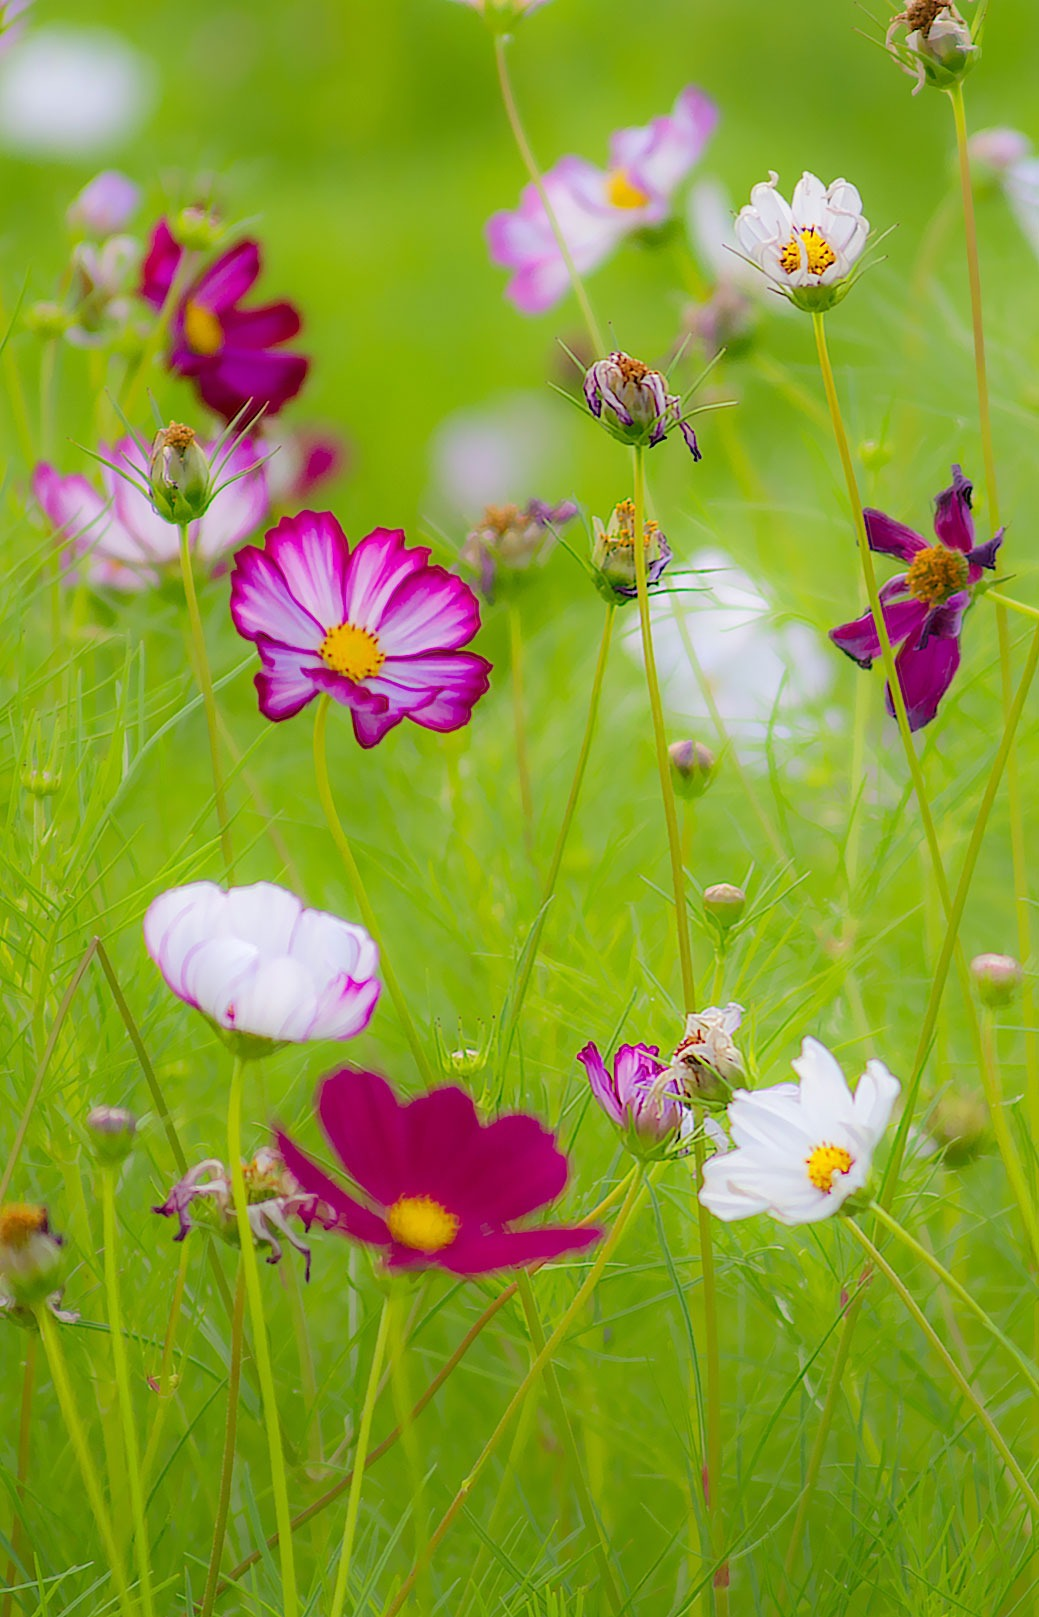 Free Photo of the Day - Summer Wildflowers